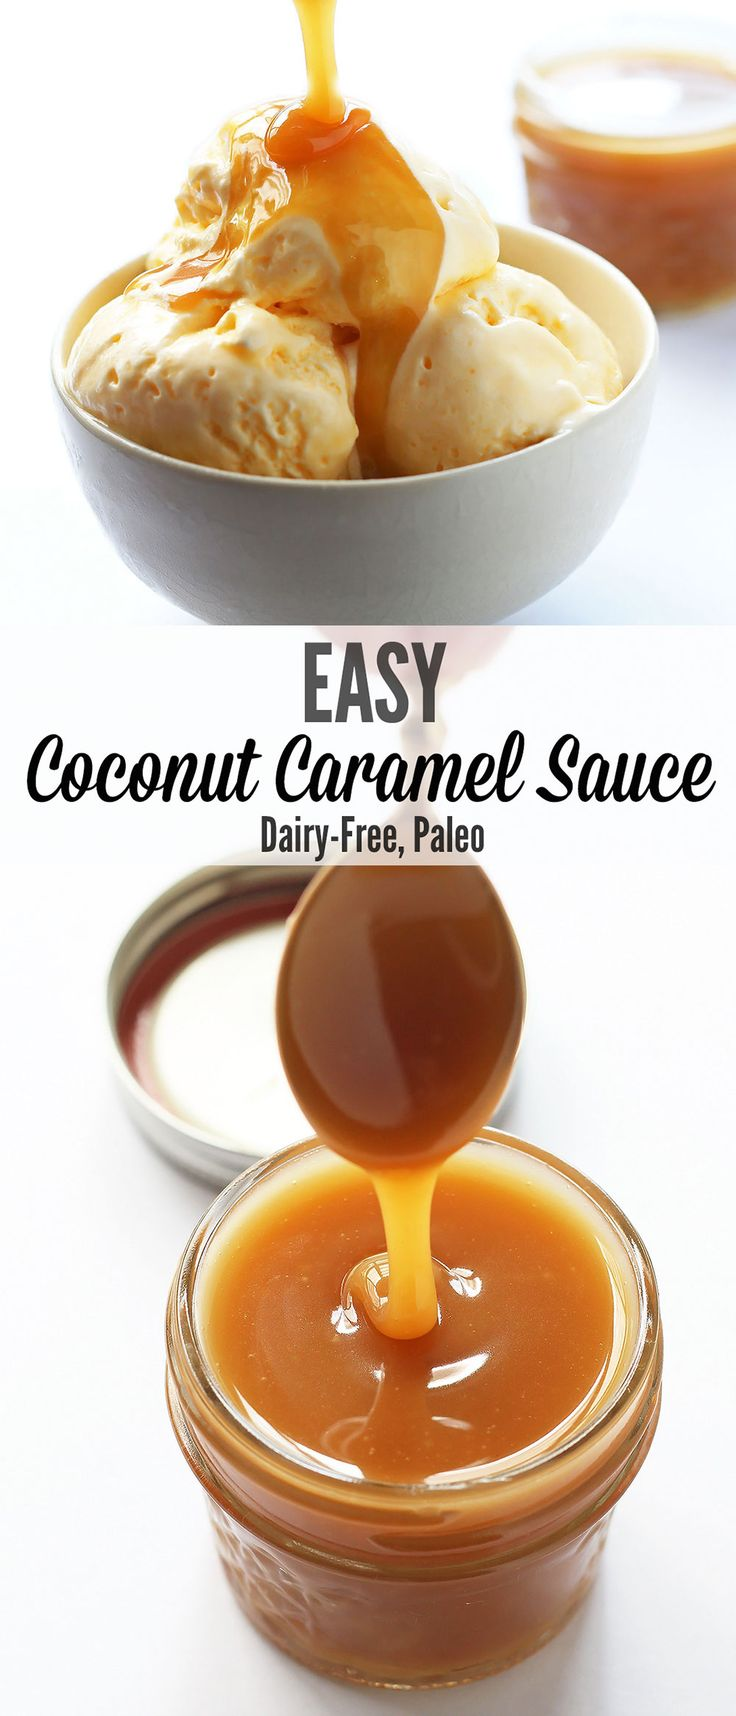 Learn how to make this amazing and easy caramel sauce. It is made with coconut sugar + coconut cream so it is dairy-free and paleo friendly.